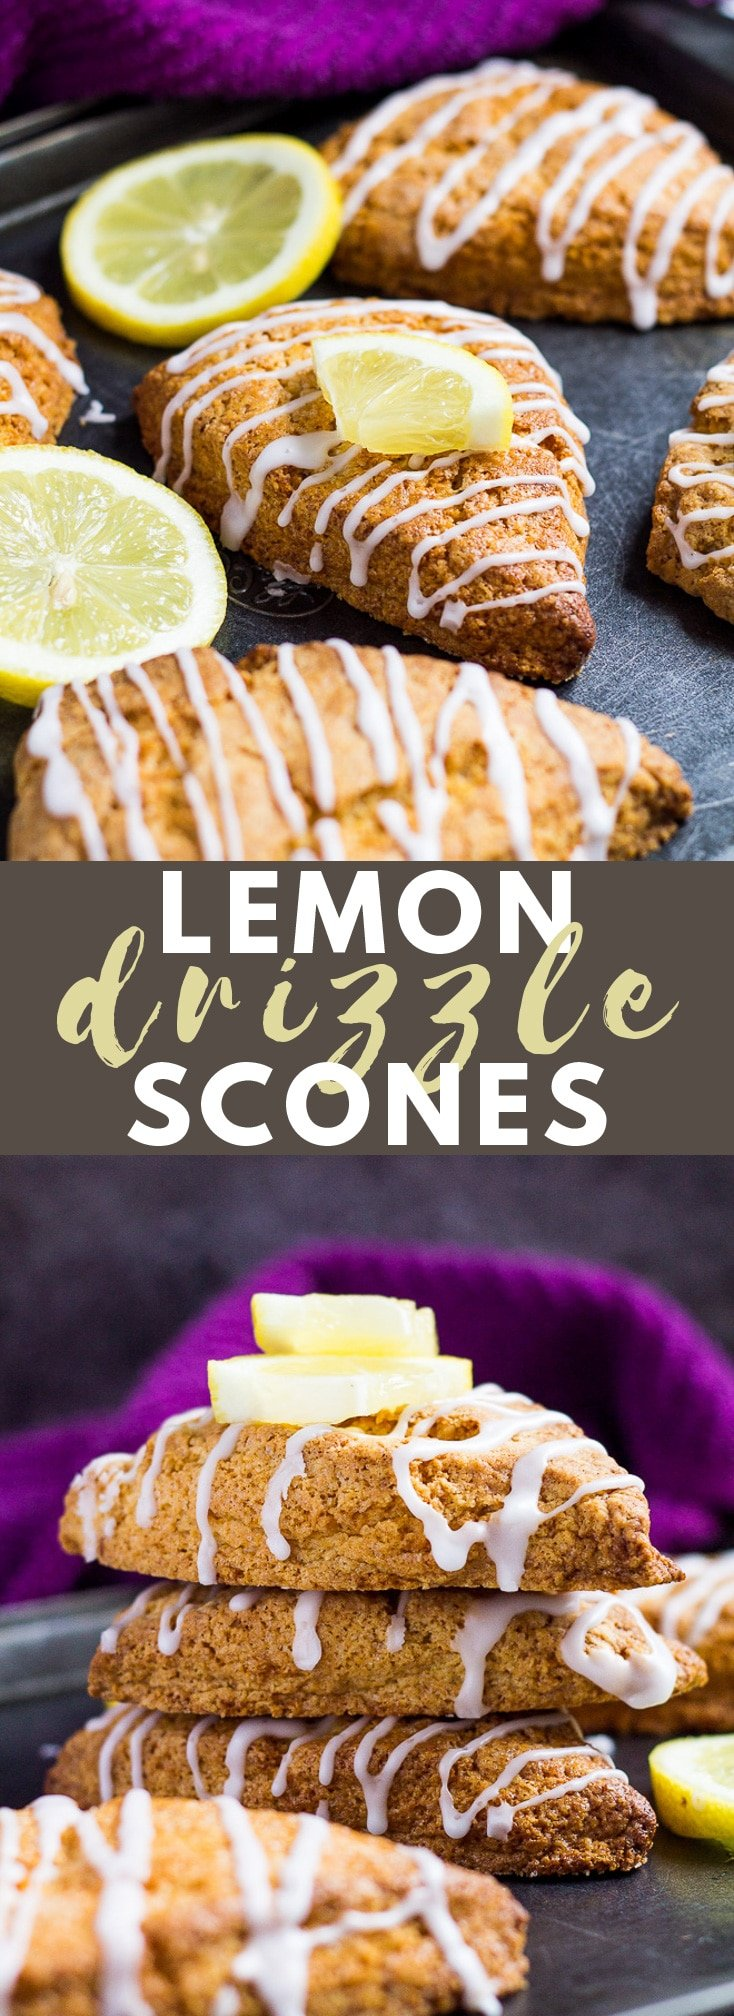 Lemon Drizzle Scones- These scones are deliciously soft and fluffy on the inside and crispy on the outside, infused with lemon and drizzled with a sweet lemon glaze! #lemon #scones #bread #recipe